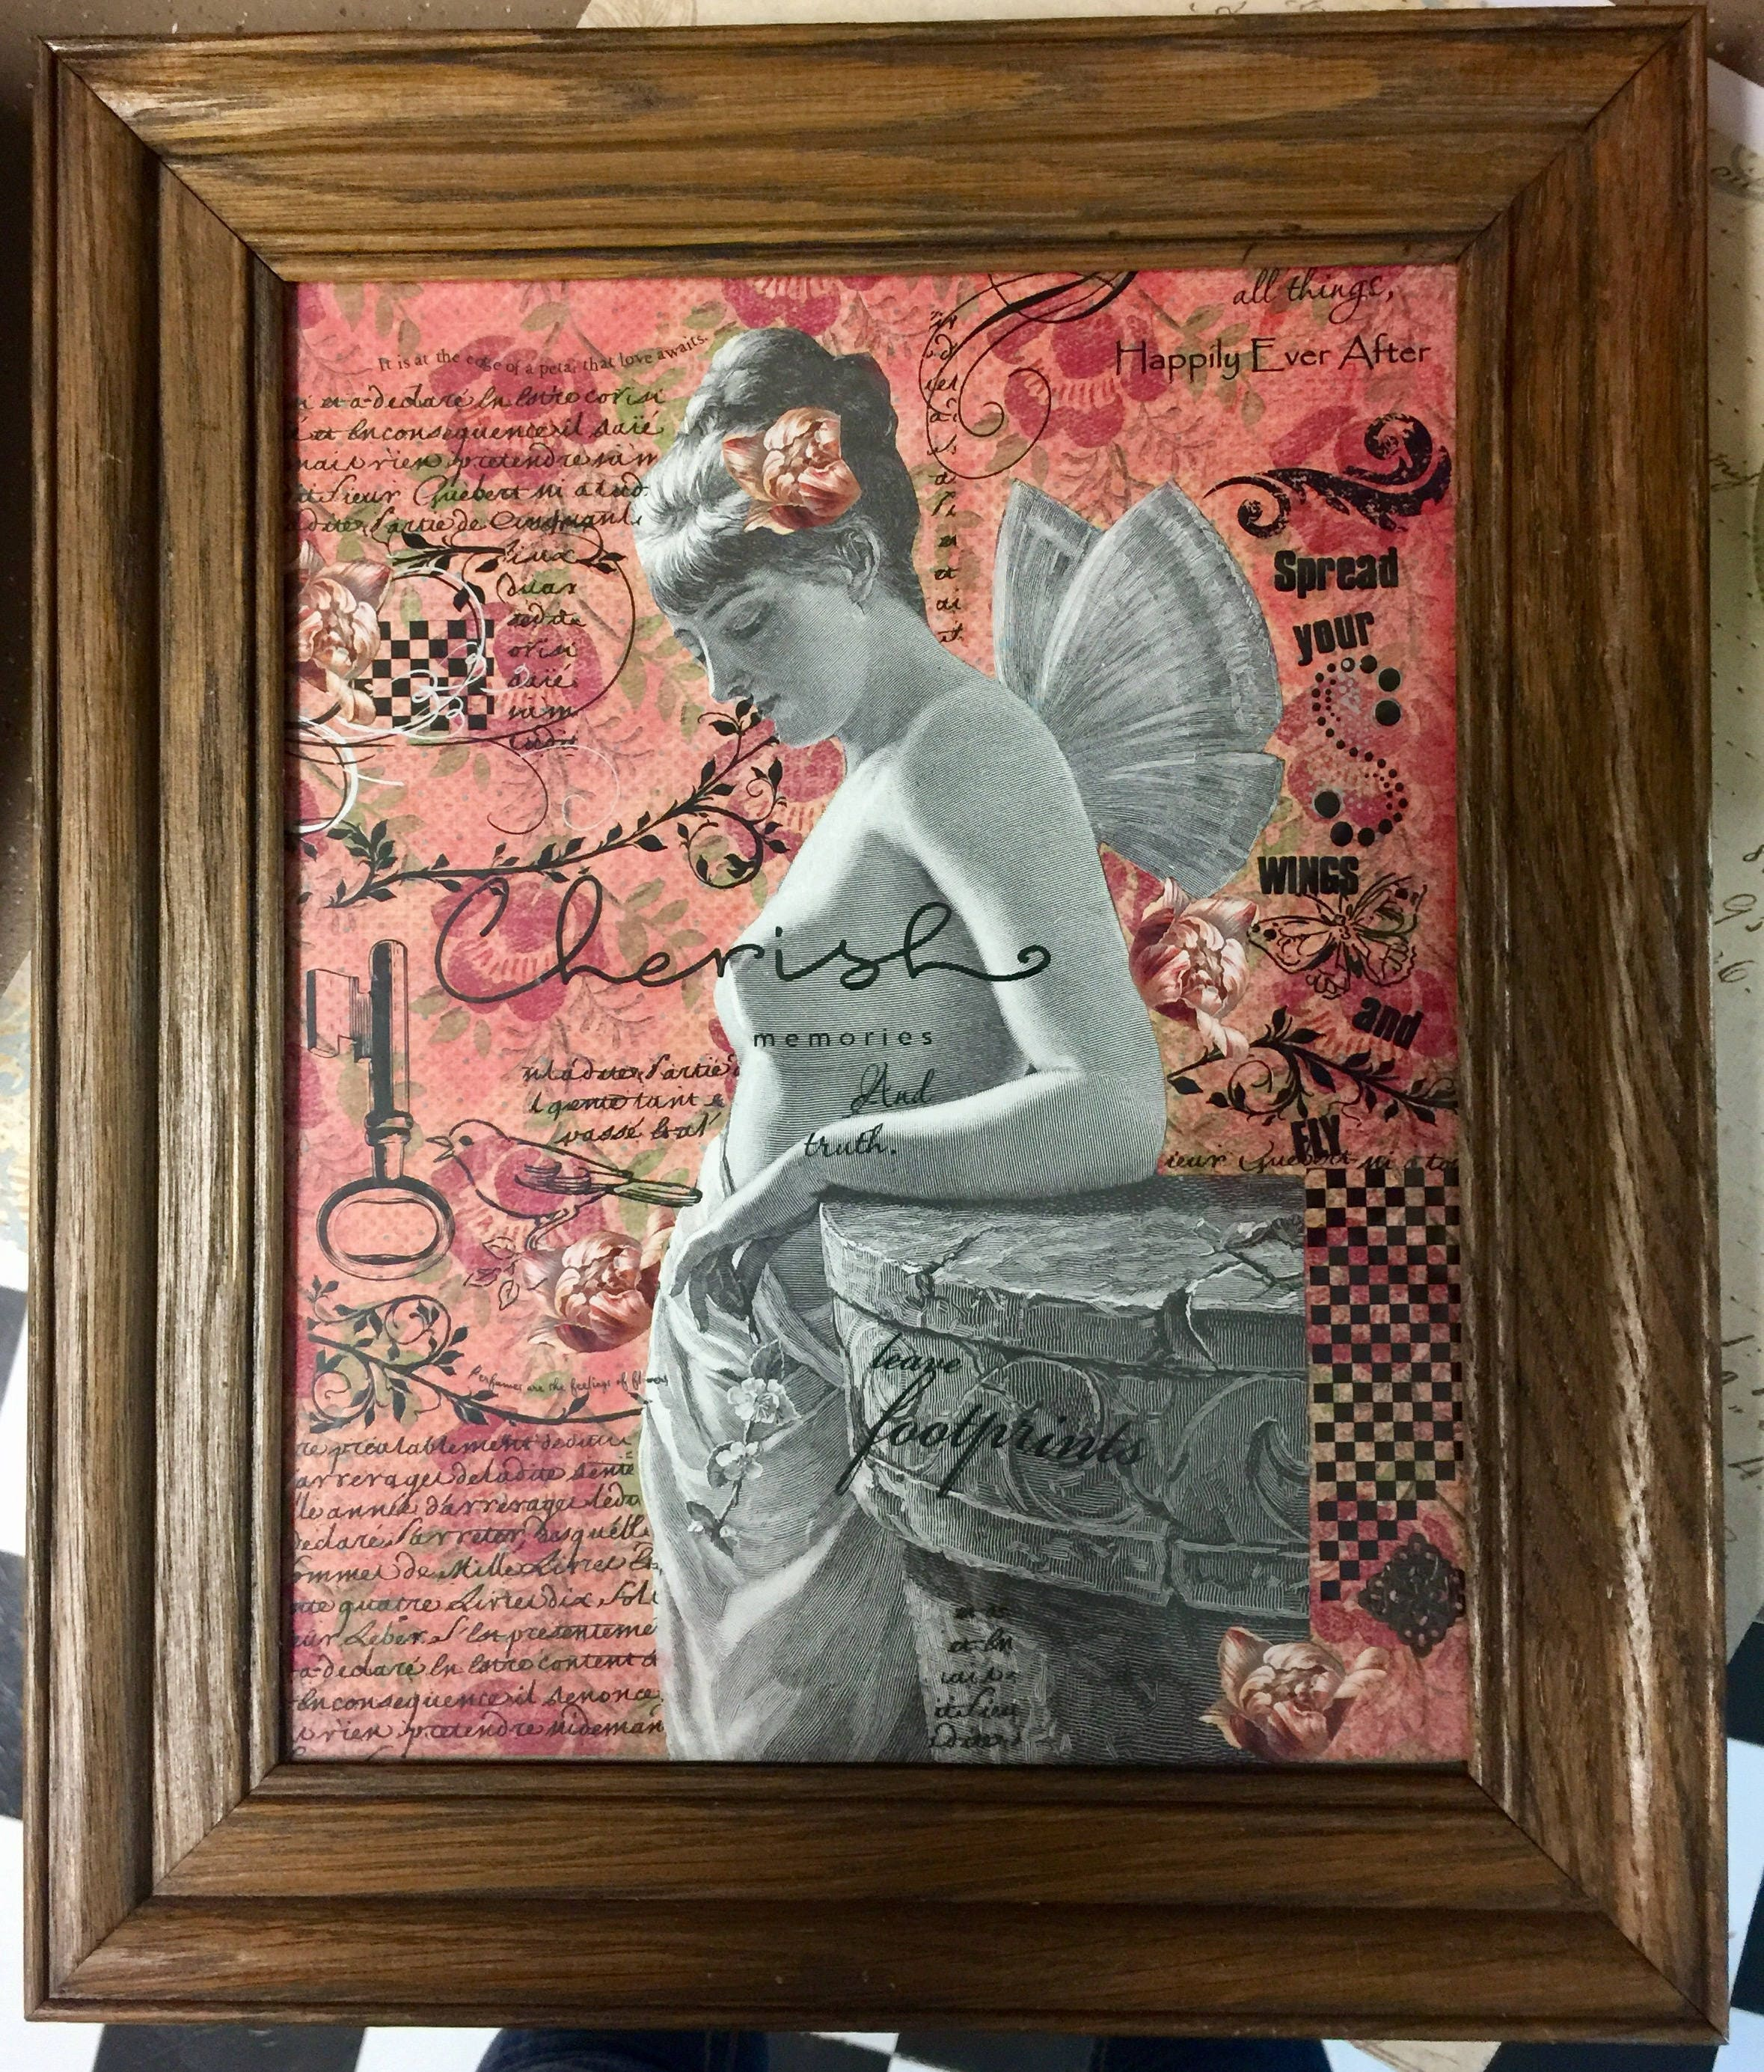 Cherish Your Beauty Another Framed Assemblage By Alteredhead-3200